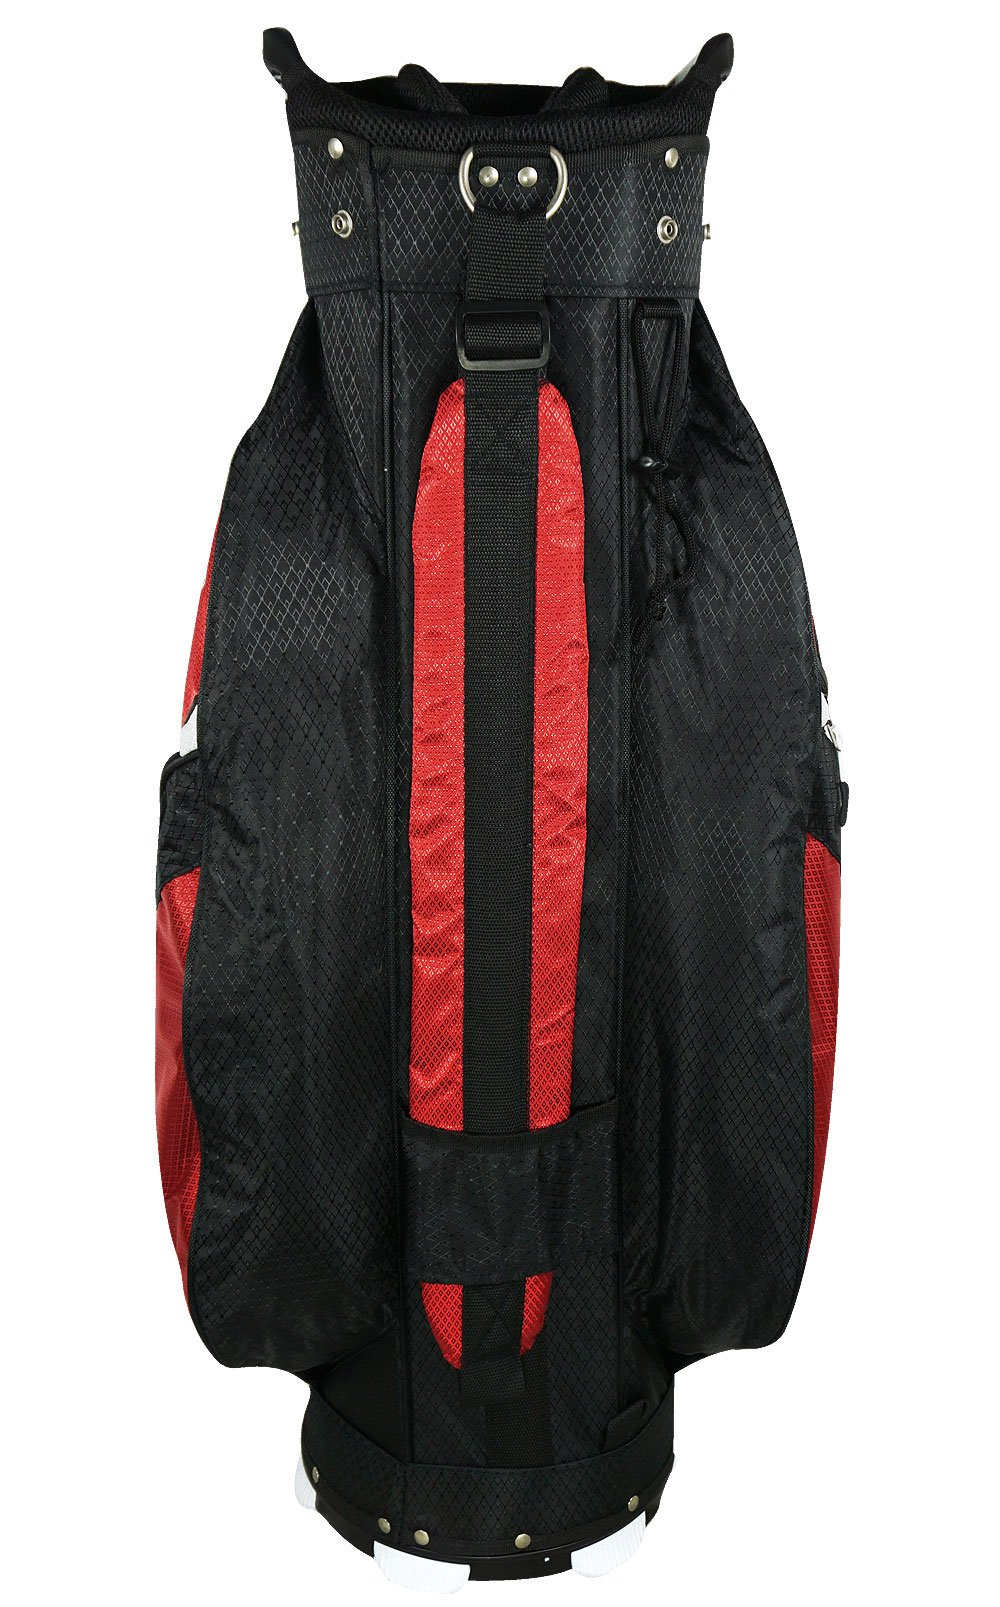 Hot-Z Golf 4.5 Cart Bag, Black/Red